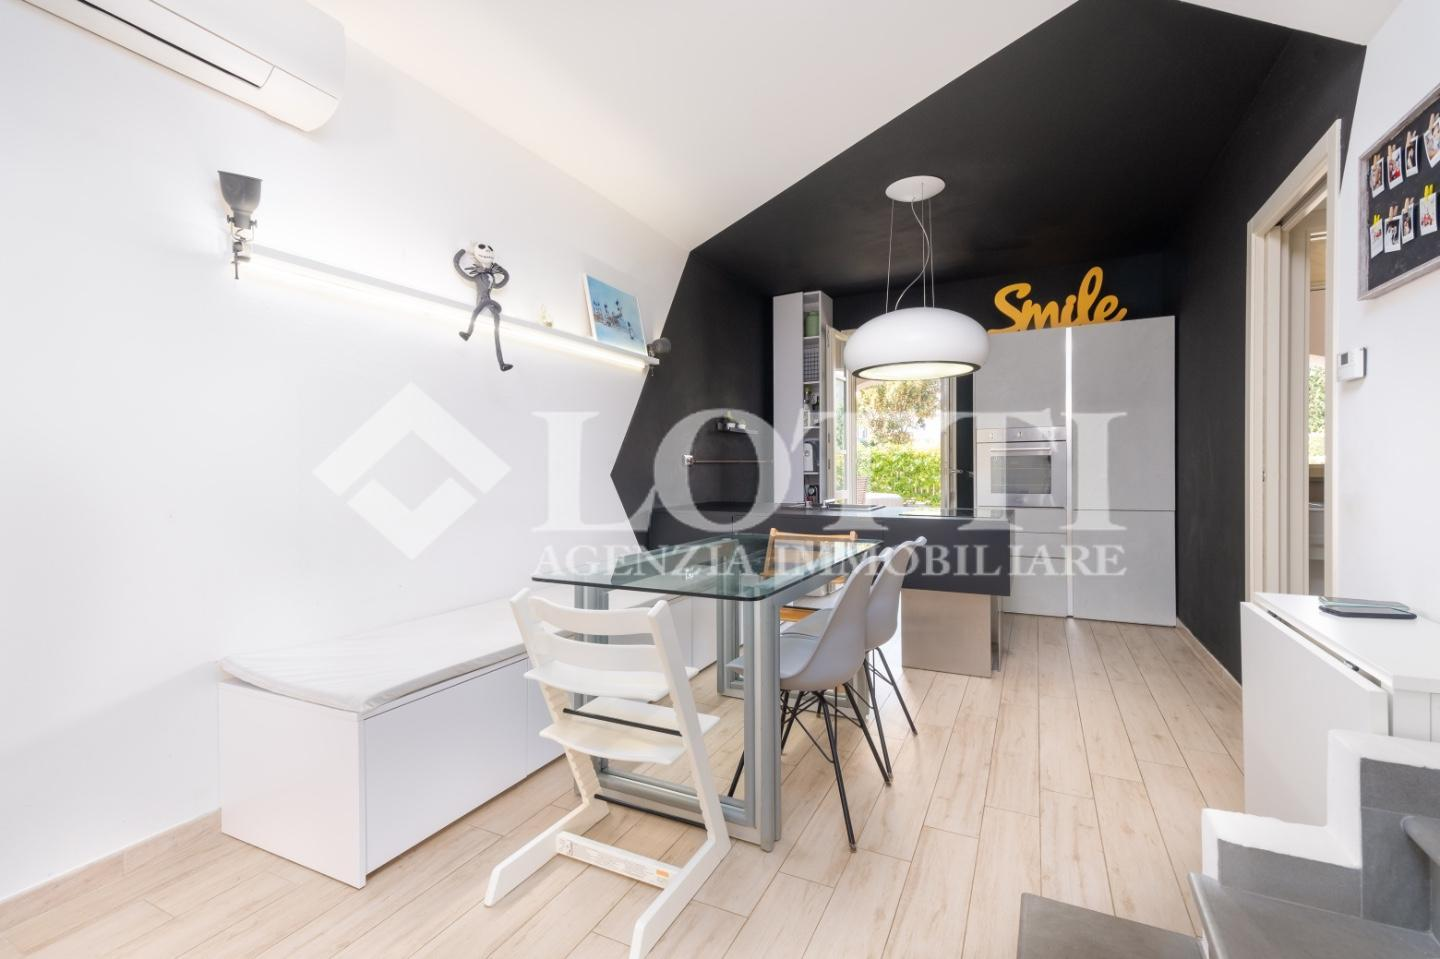 Terraced house for sale, ref. 712